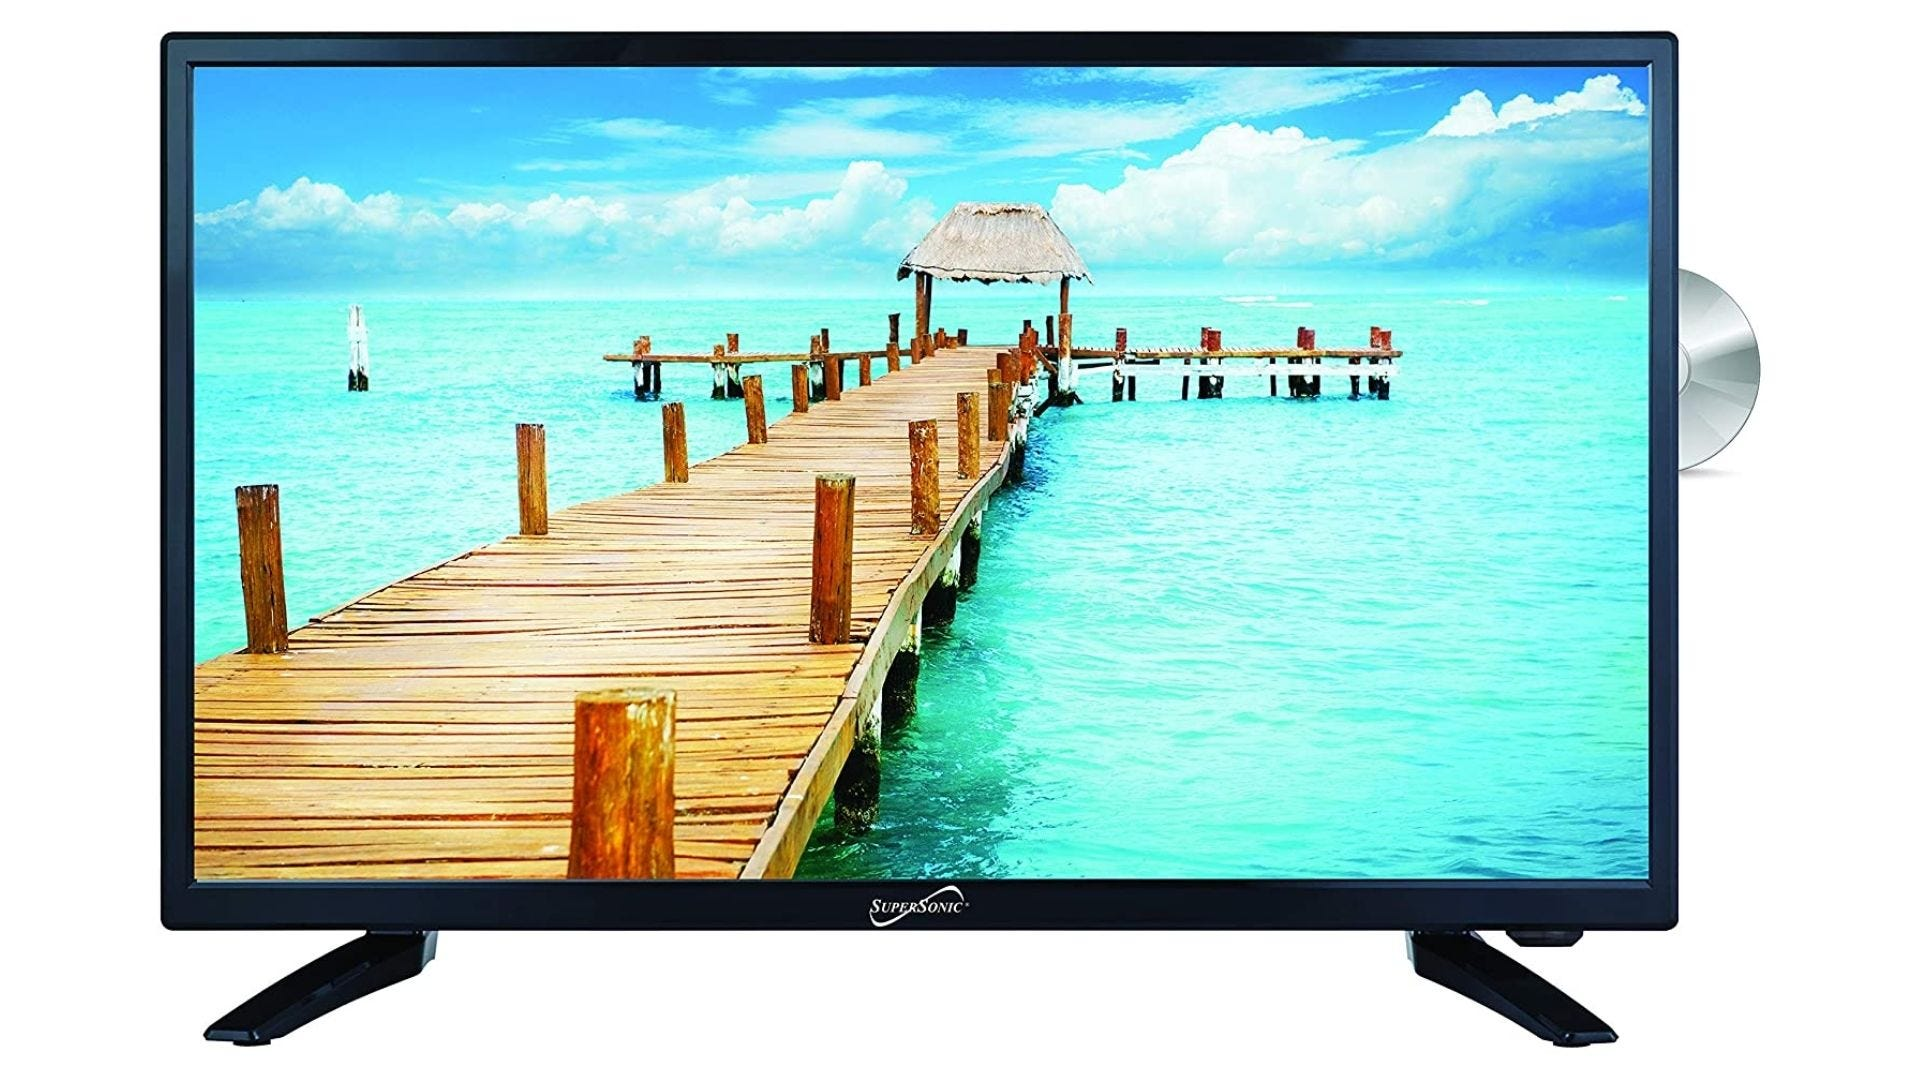 SuperSonic SC-2412 LED Widescreen HDTV